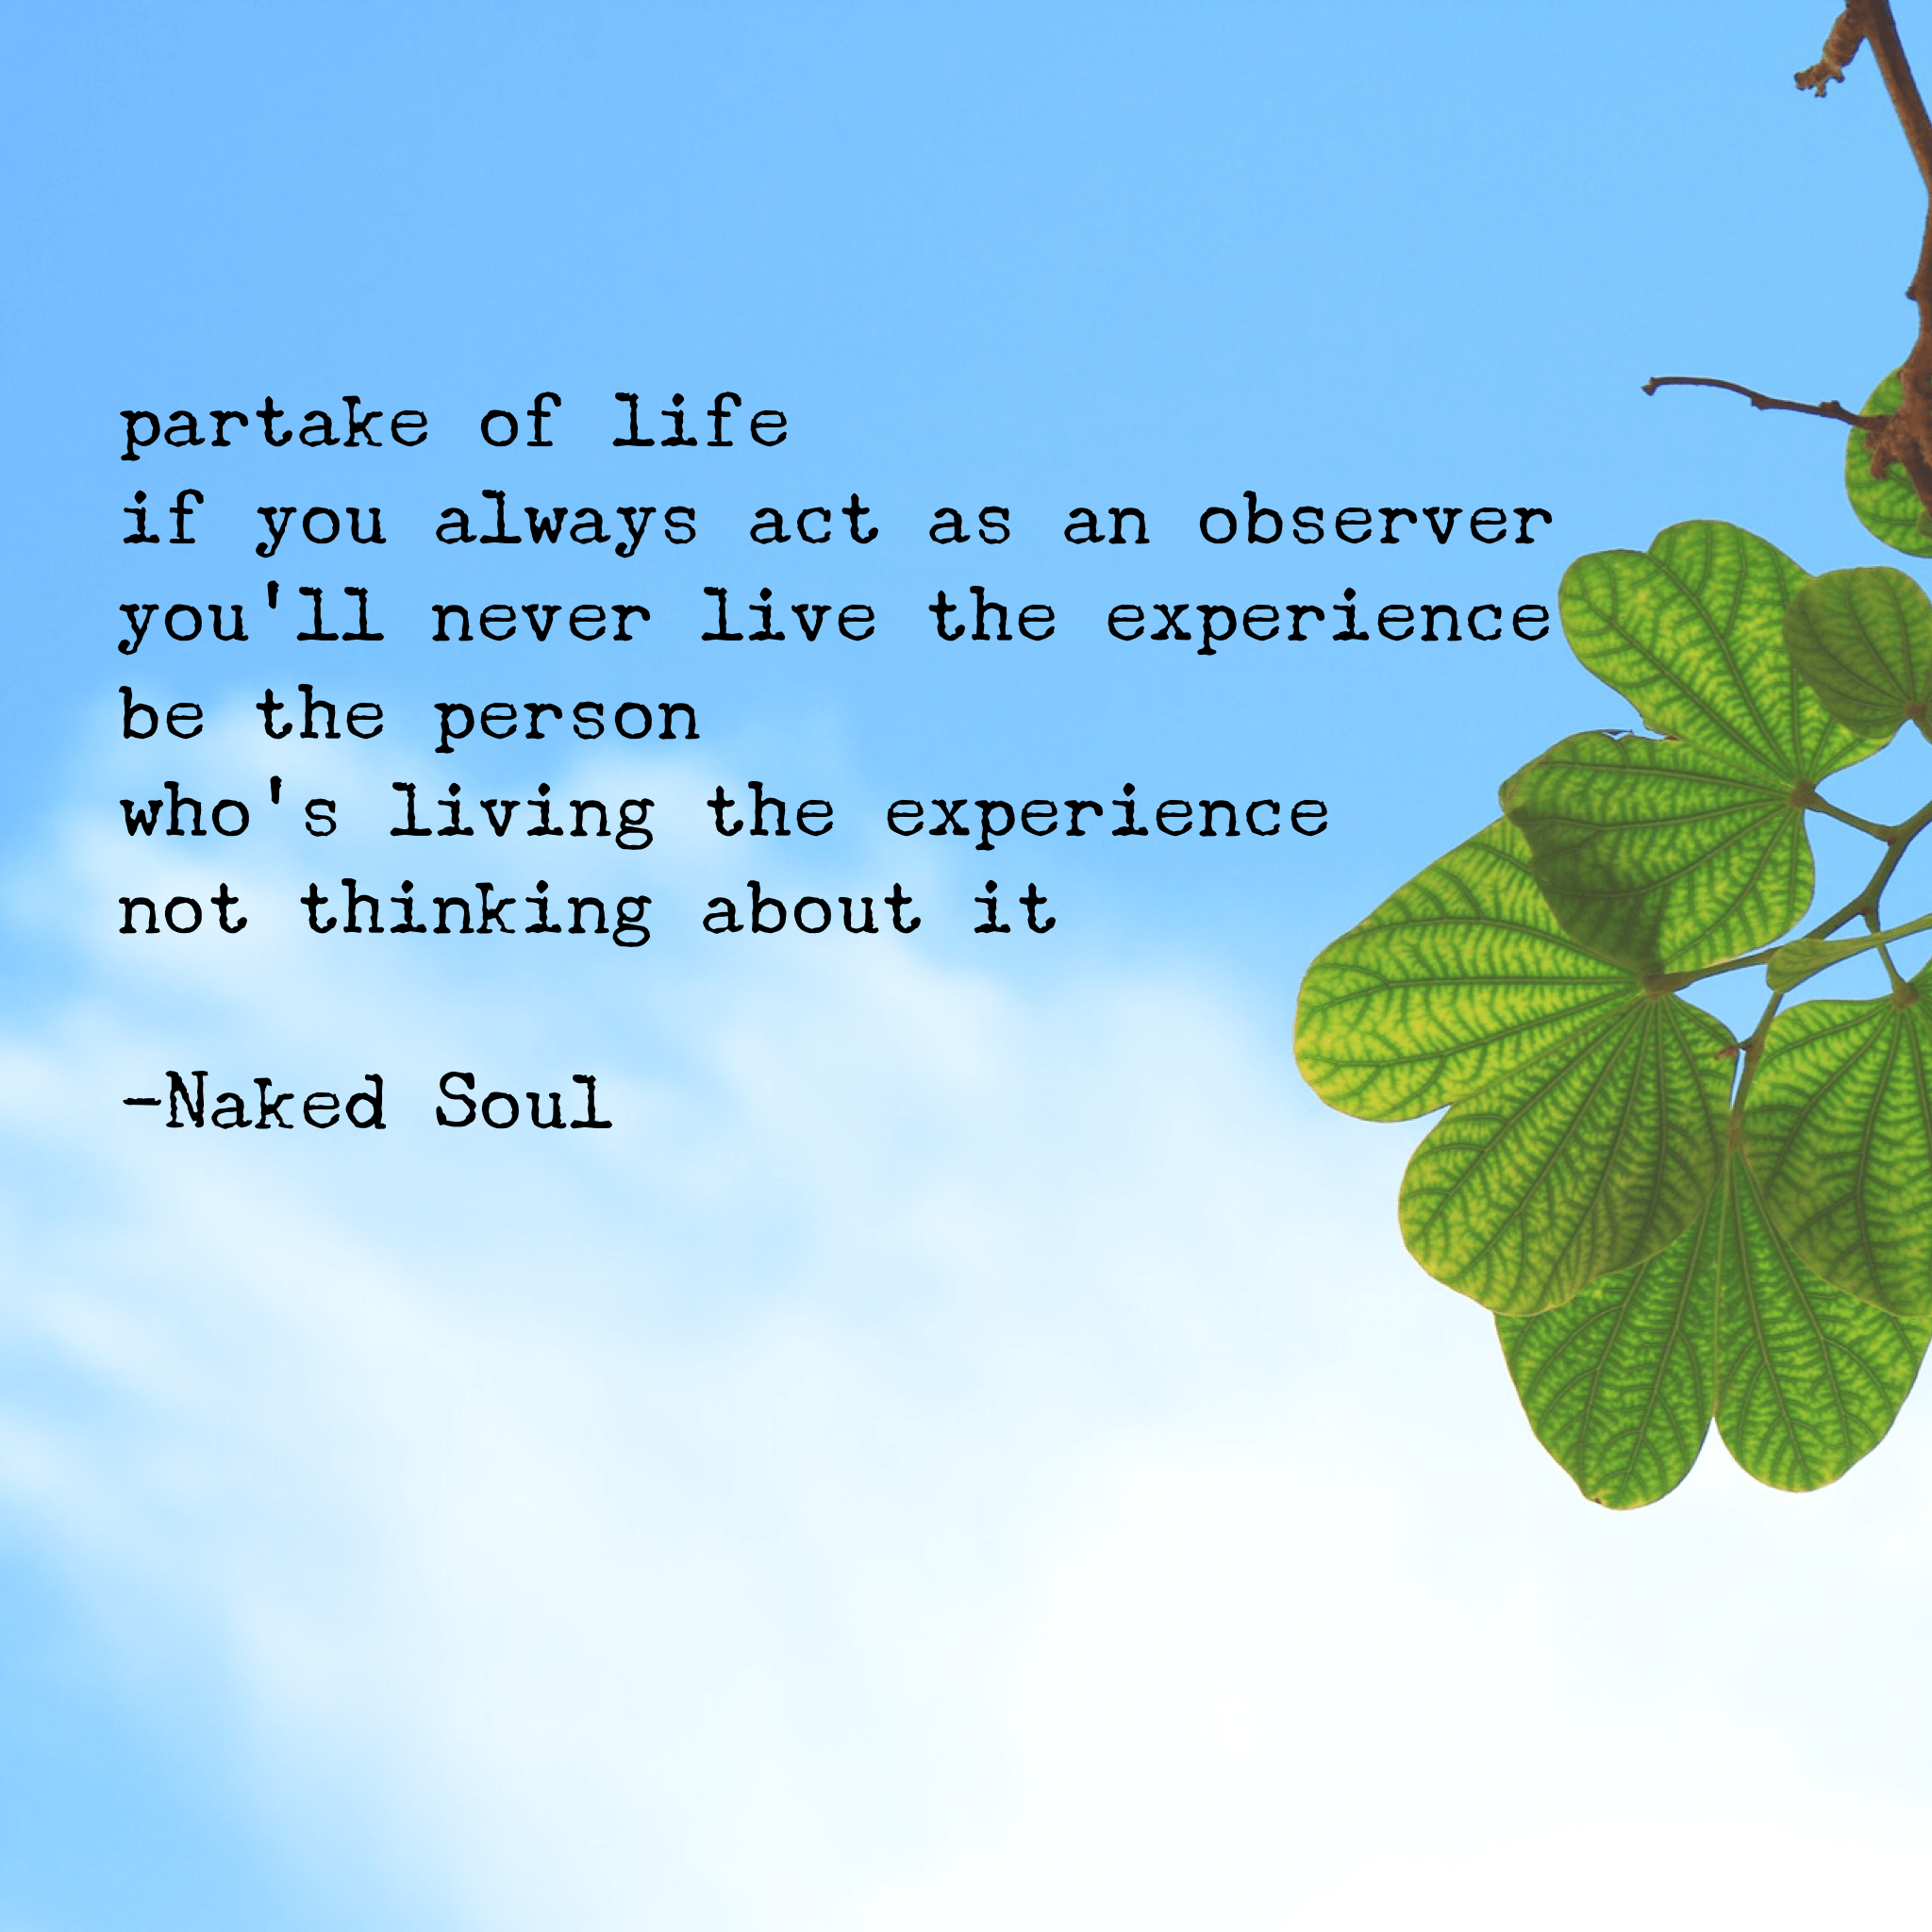 partake of life if you always act as an observer you'll never live the experience be the person who's living the experience not thinking about it